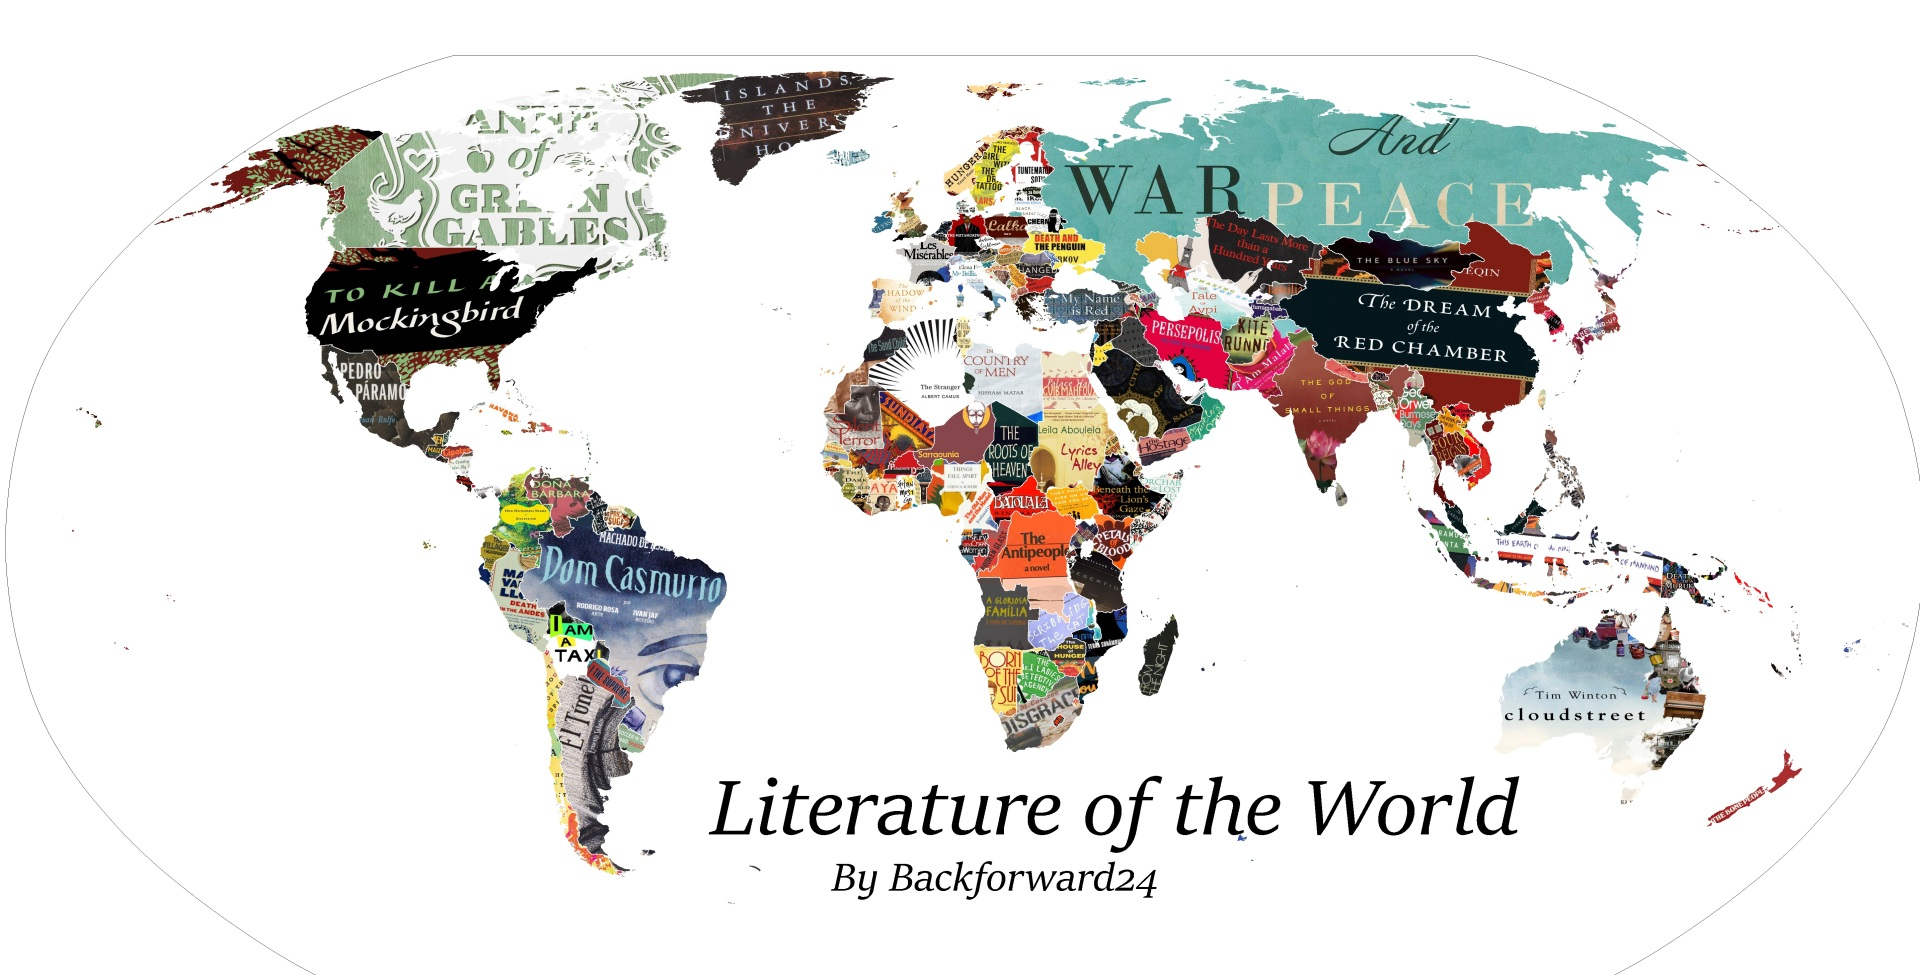 Literature Map of the World